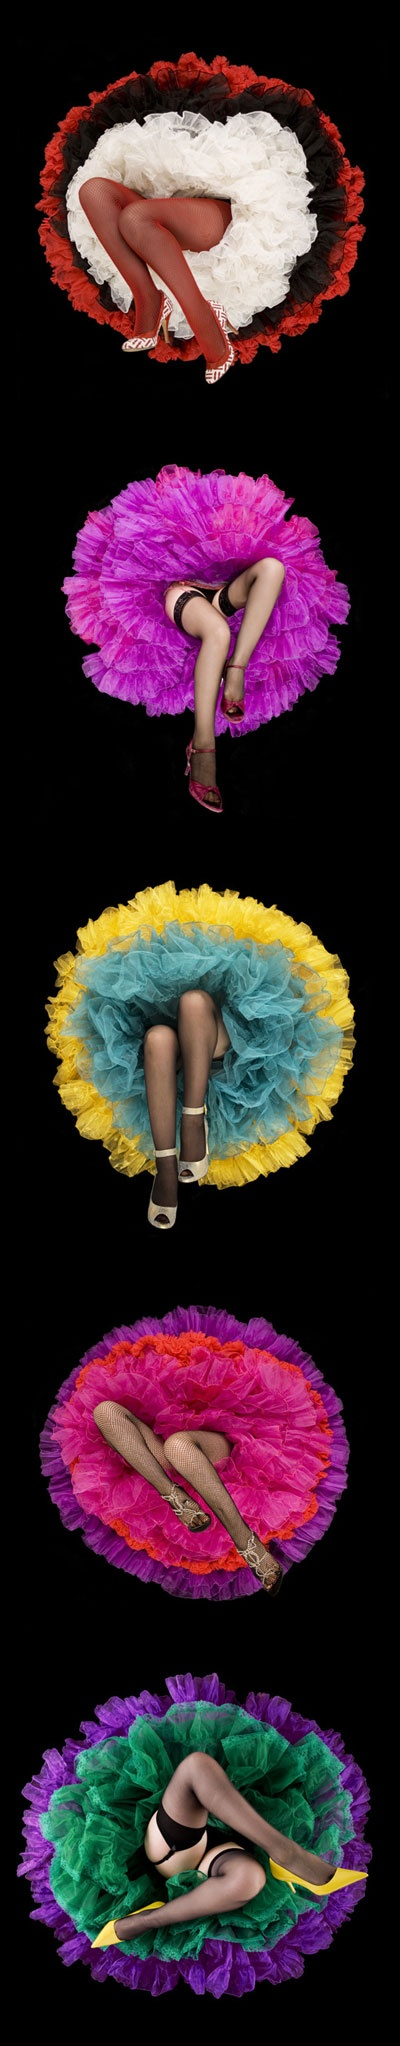 This is both pretty but somewhat disturbing. Like, ooh, it's like flowers made of tulle...with...disembodied legs coming out of them. It'd be nice to see a smile or a wink peeking out over the top of the skirts. DARYL BANKS